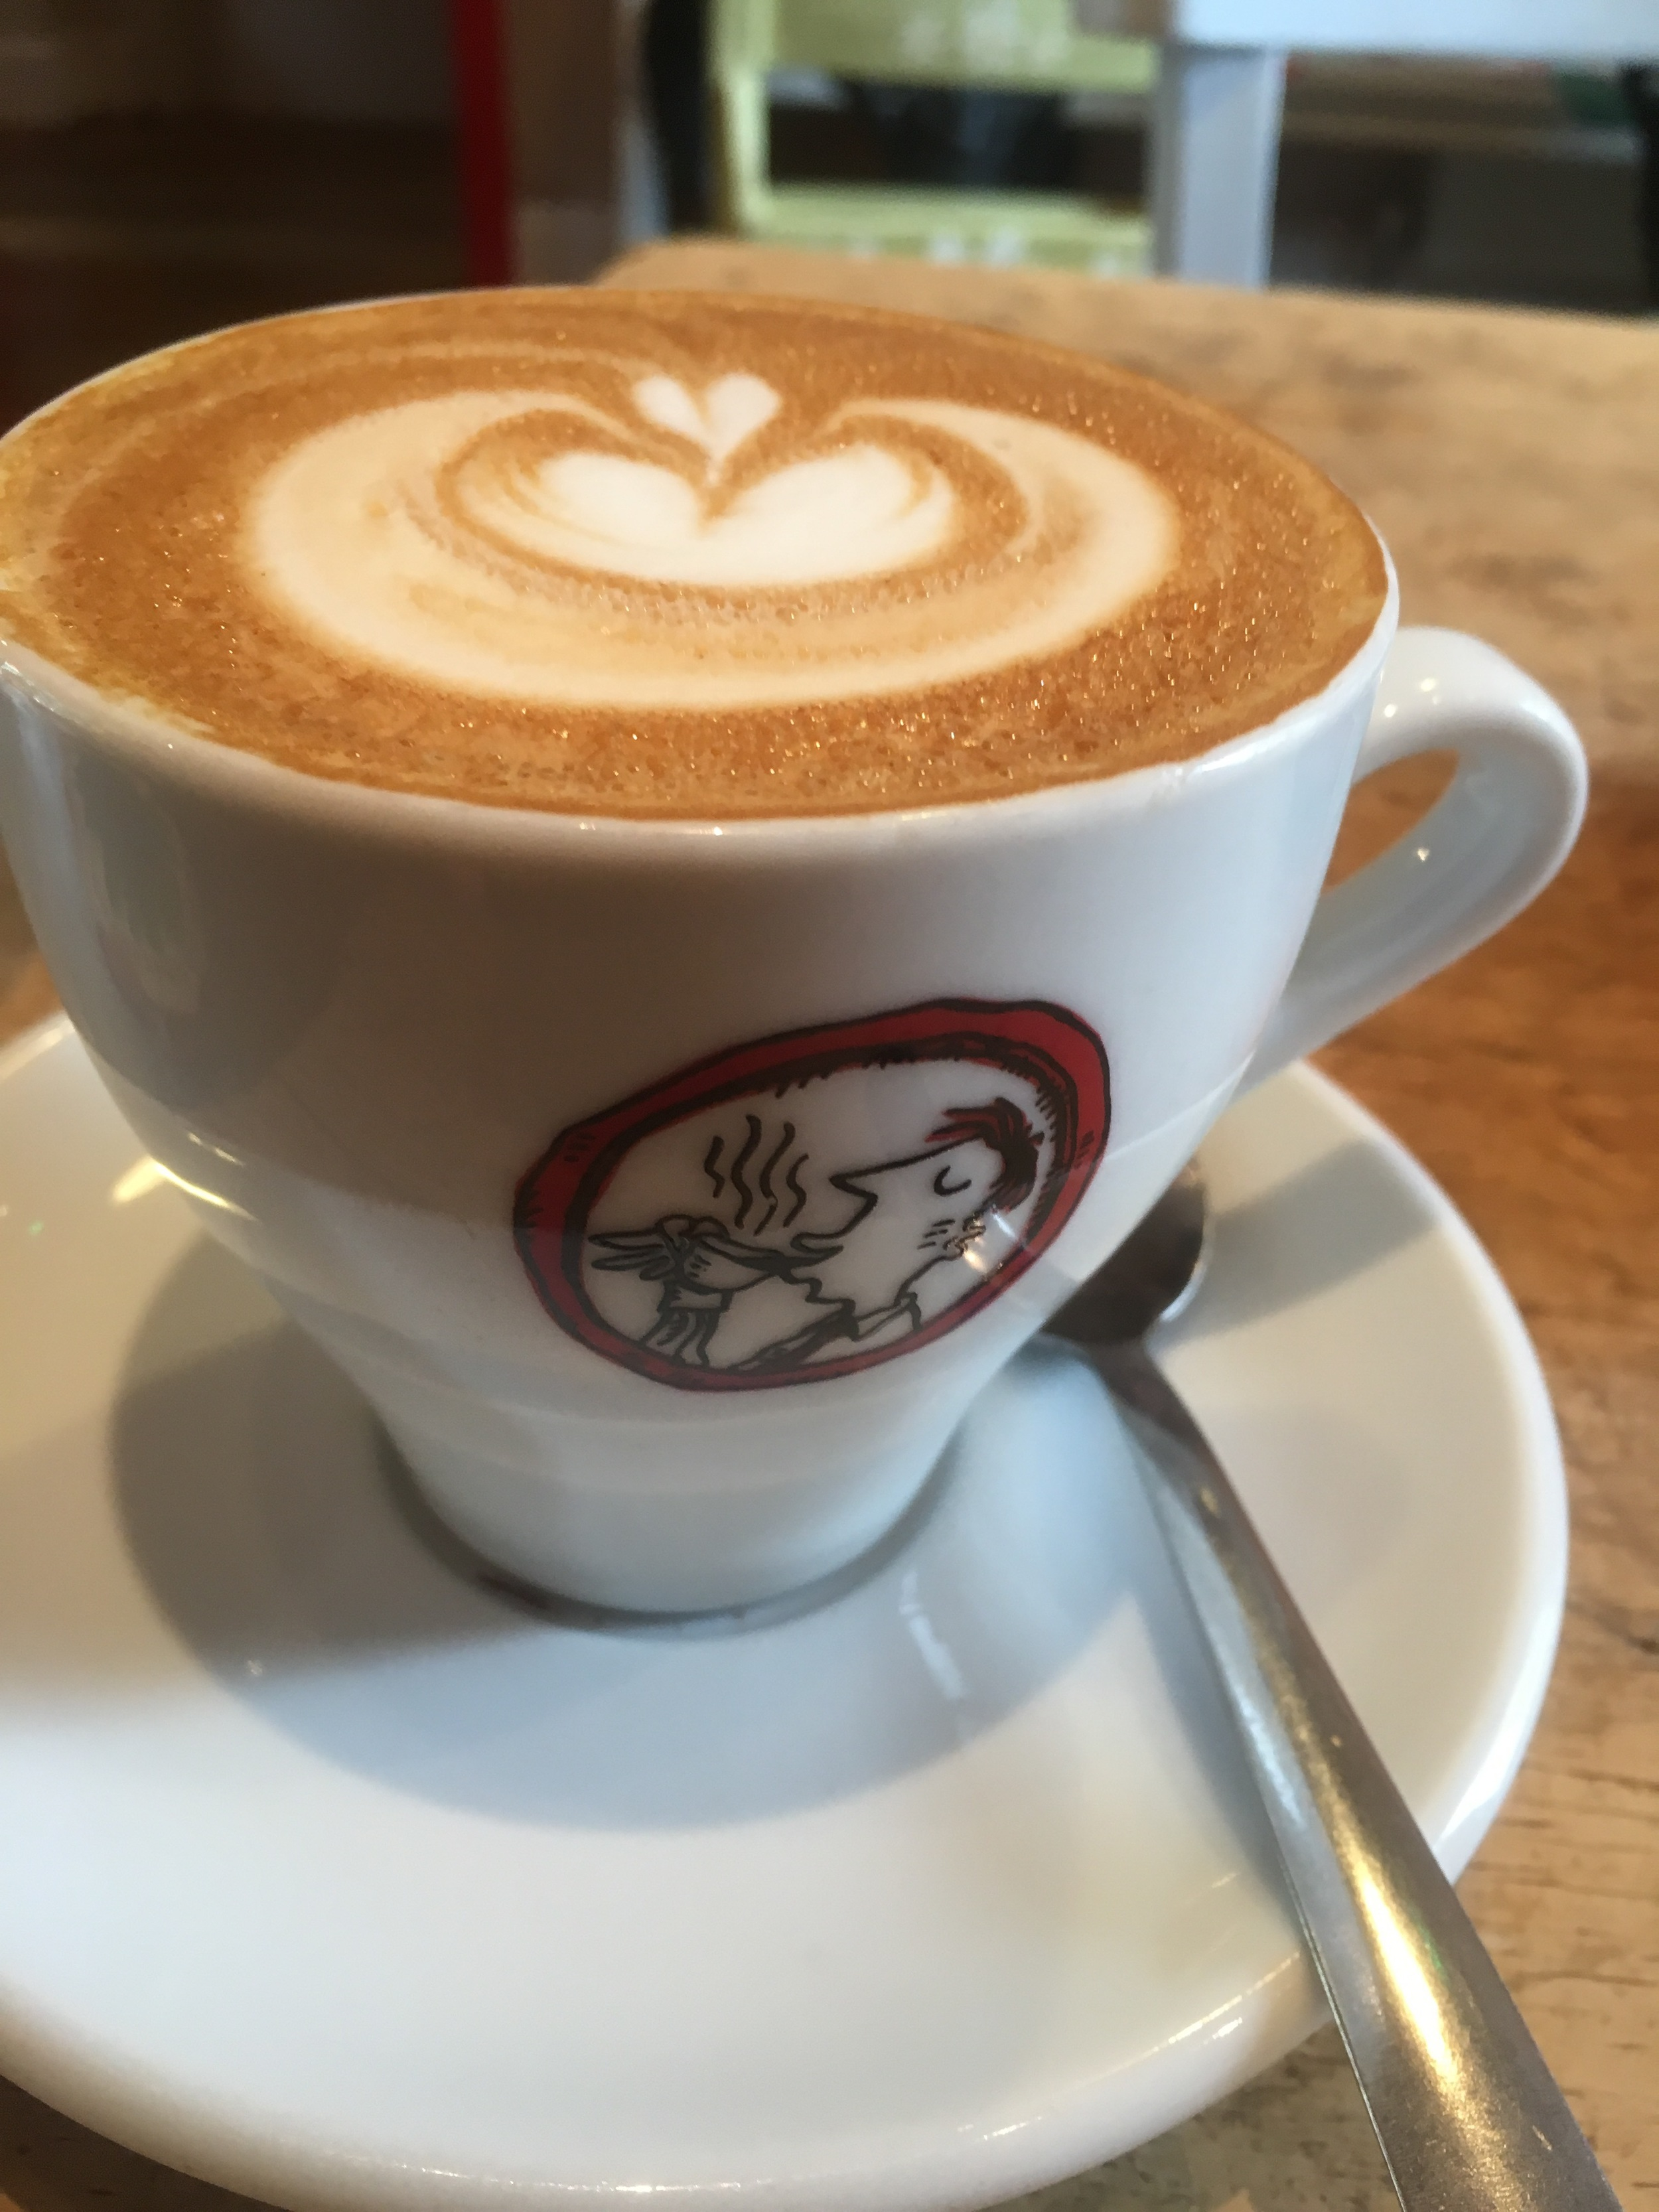 Great looking coffee